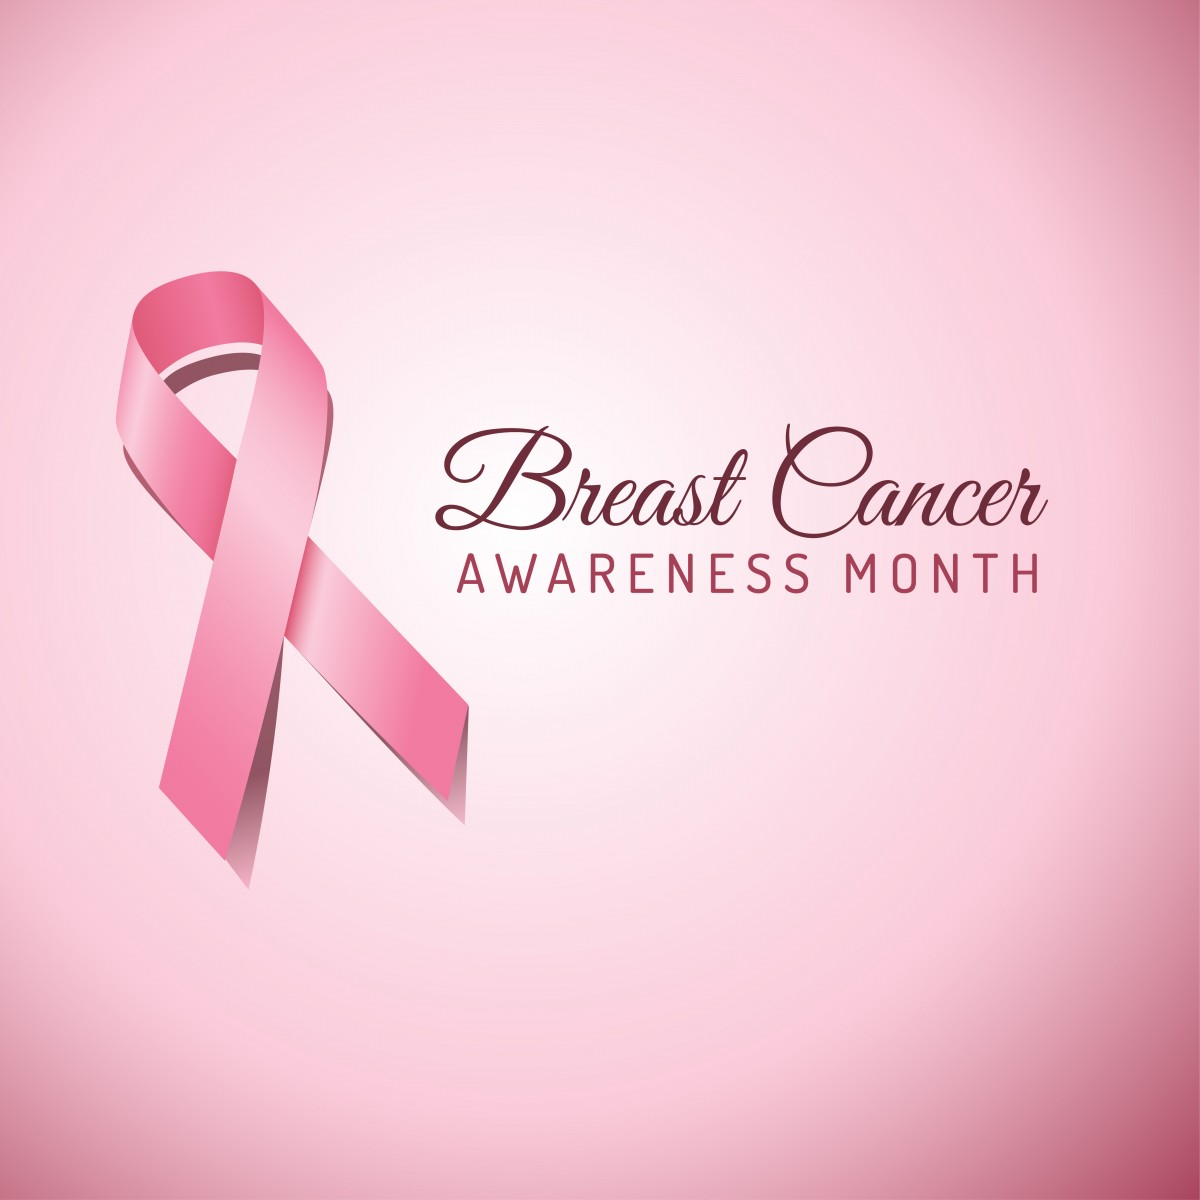 Not All Ribbon Pink Products Support Breast Cancer Organizations